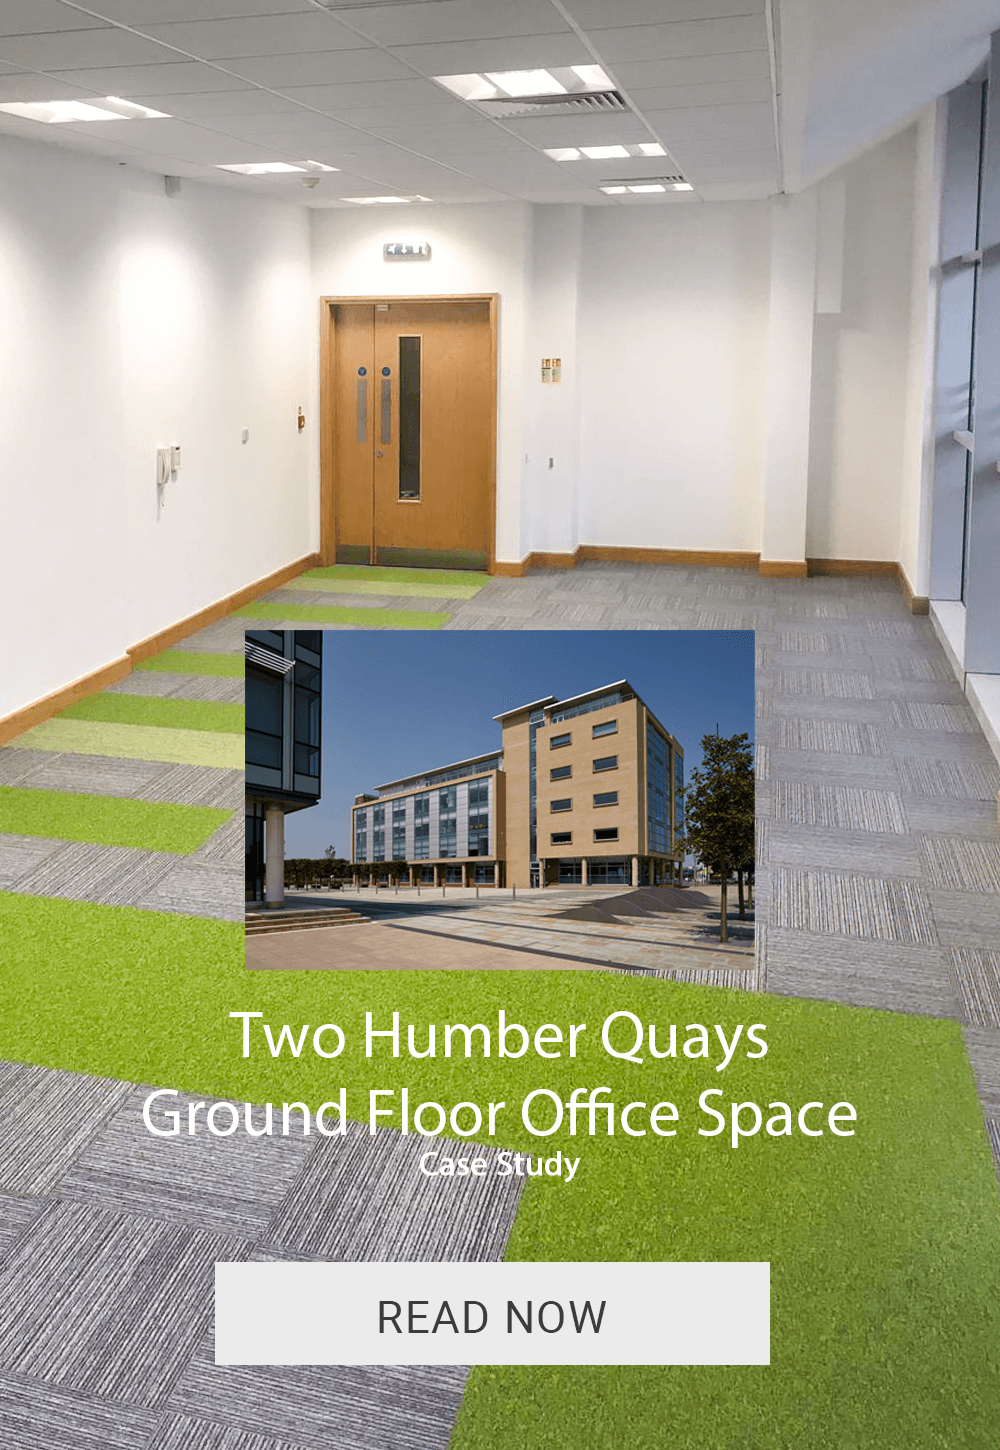 Two Humber Quays